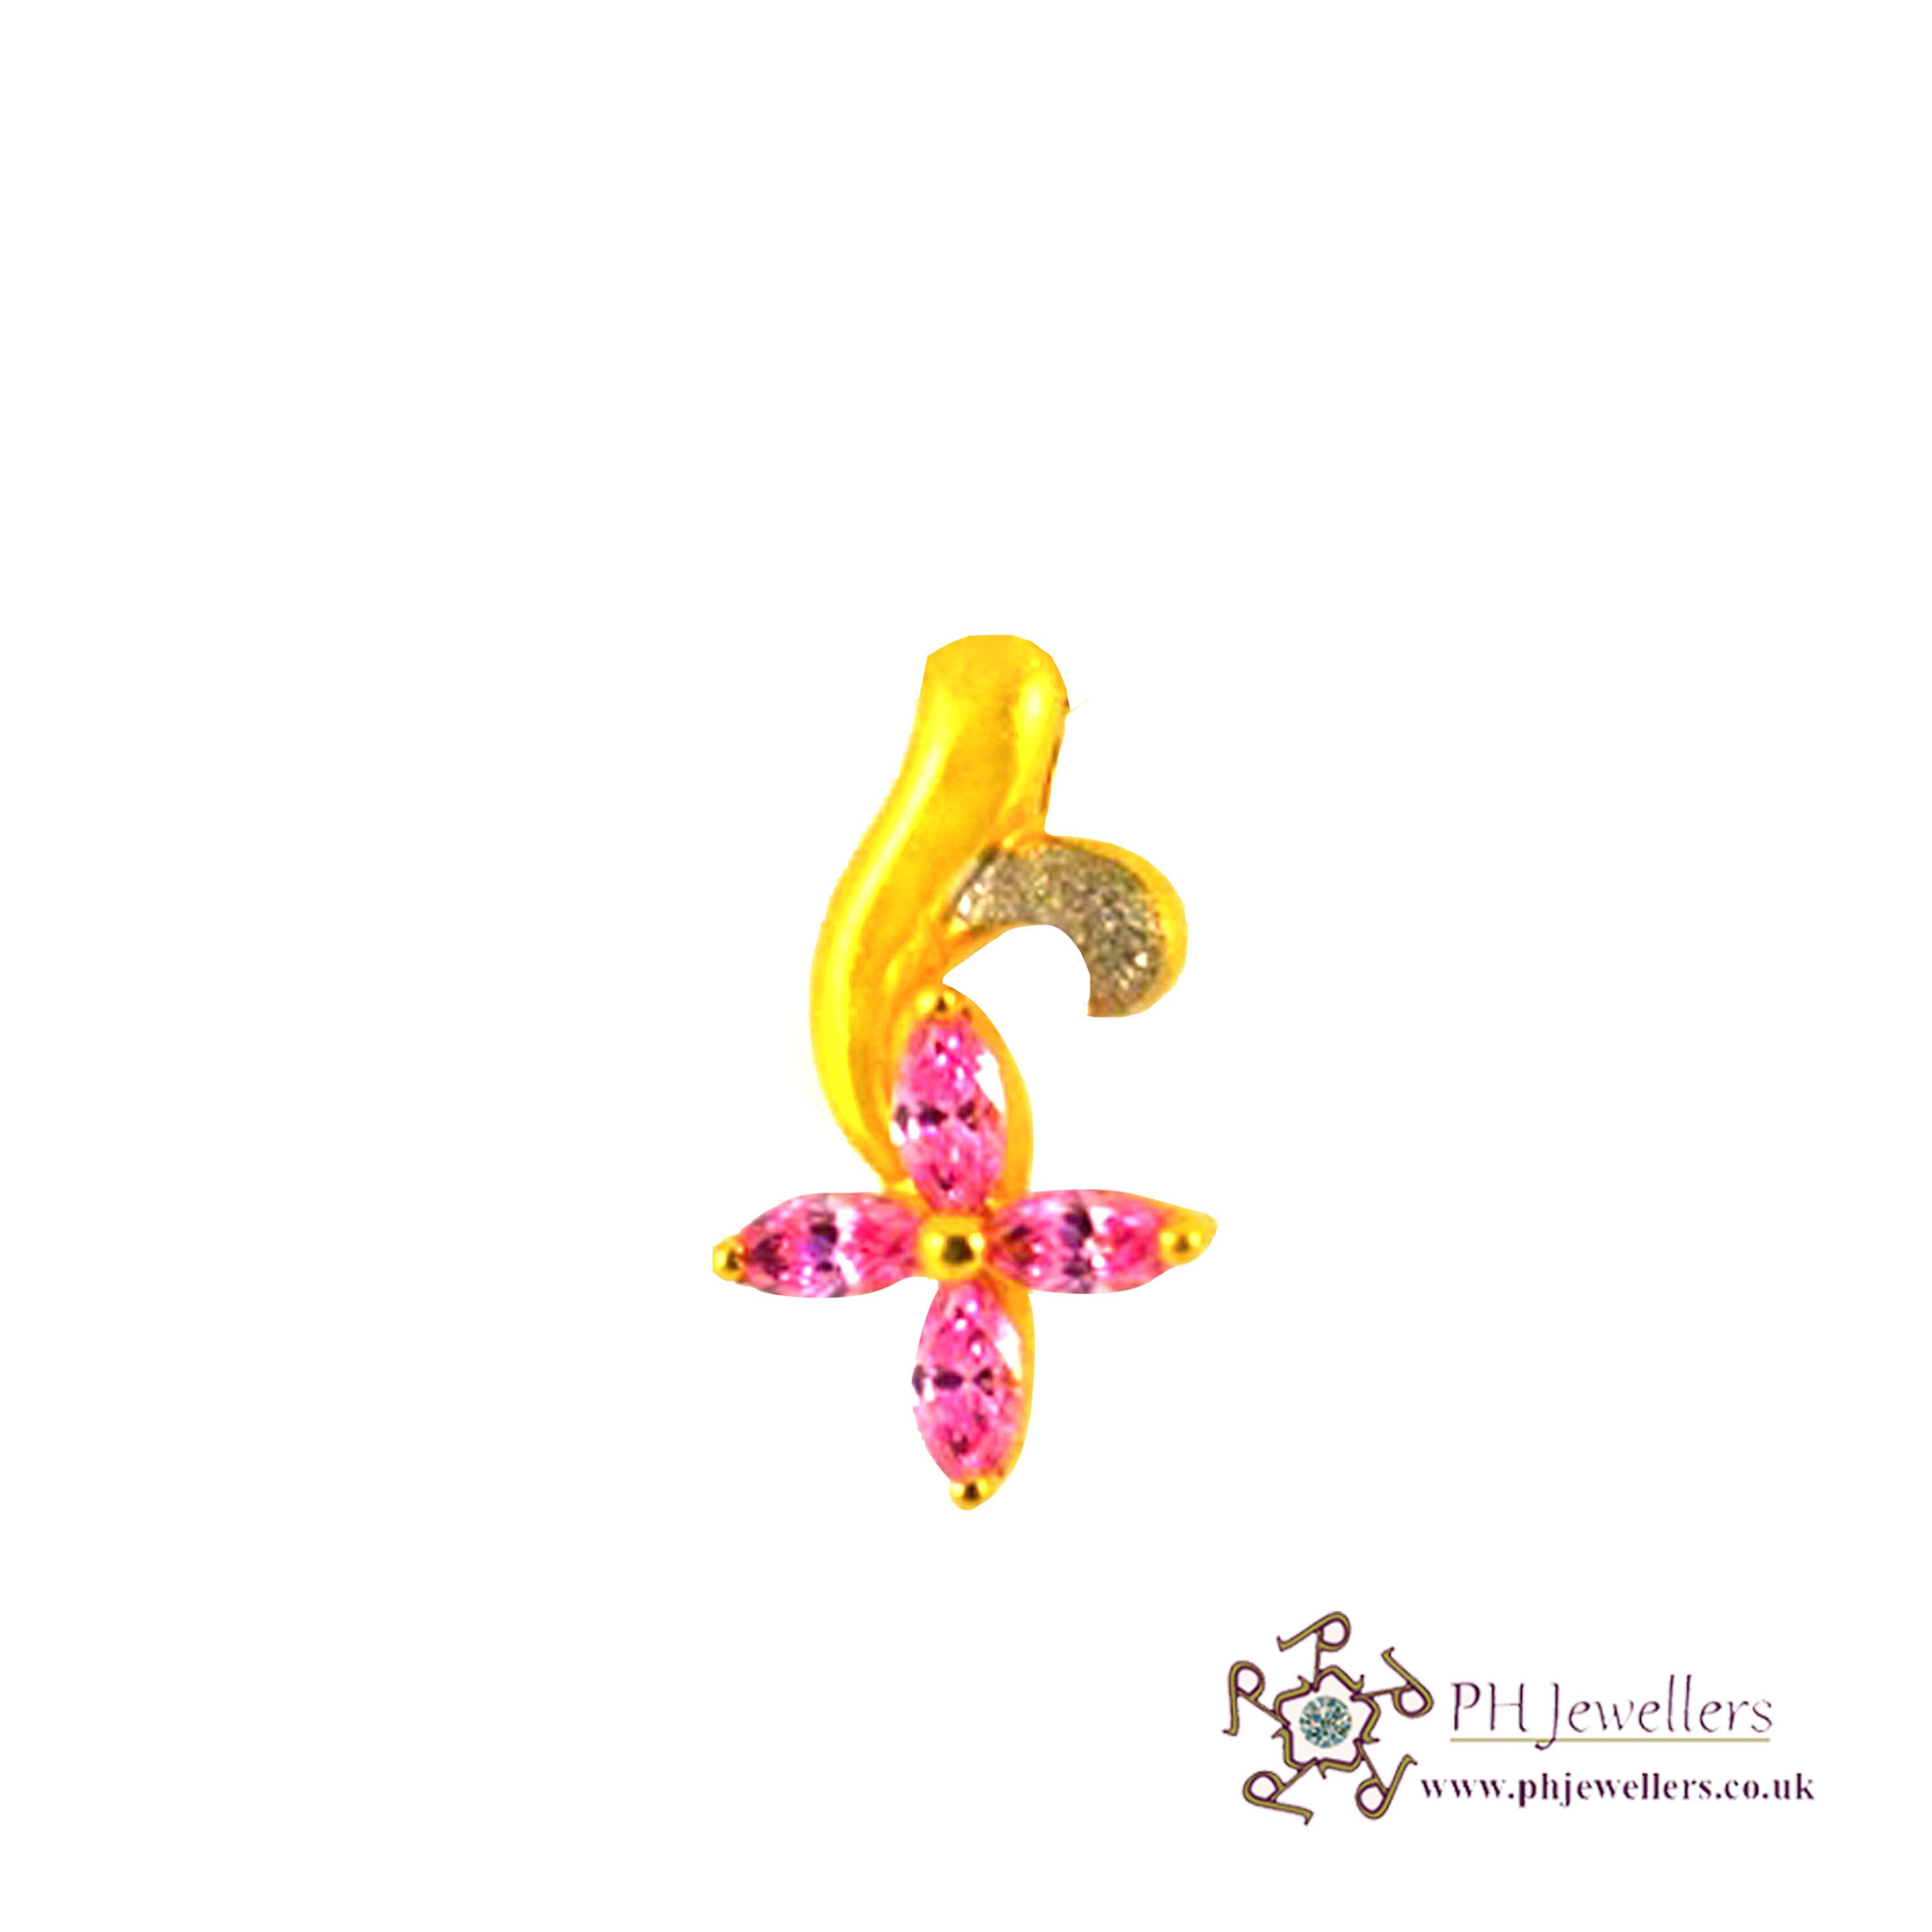 22ct 916 Hallmark Yellow Gold Flower Pink Rhodium Pendant CZ FP1